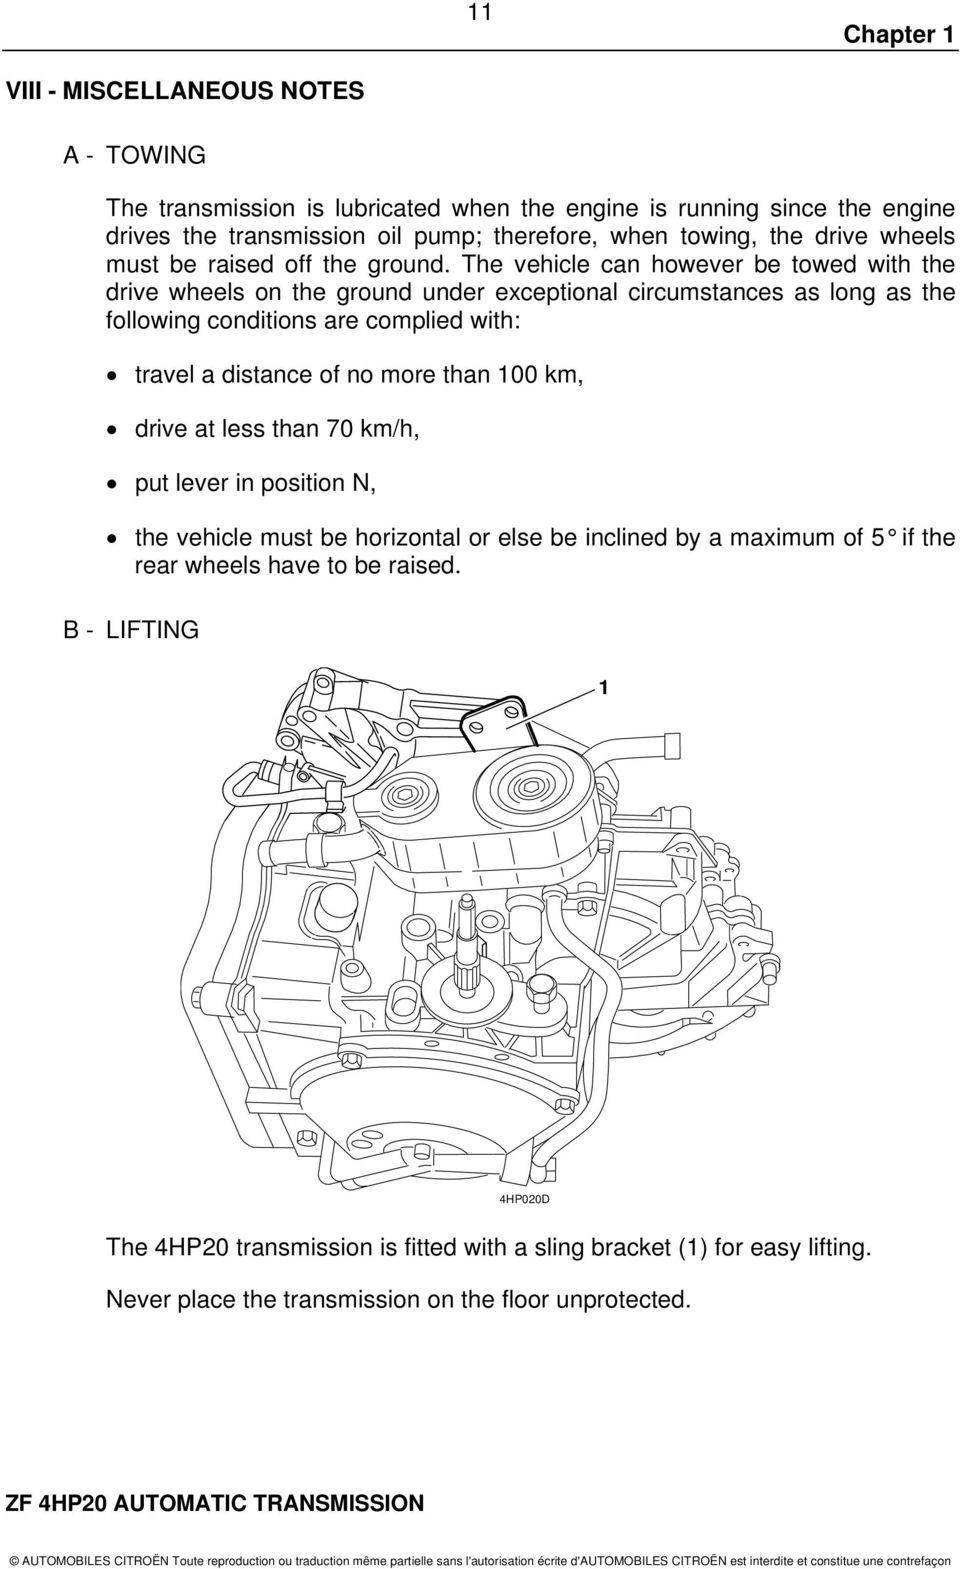 Zf 4hp20 Automatic Transmission Citron Uk Ltd 221 Bath Road Slough 2002 Mini Cooper Wiring Diagram Furthermore Trailer Hitch The Vehicle Can However Be Towed With Drive Wheels On Ground Under Exceptional Circumstances